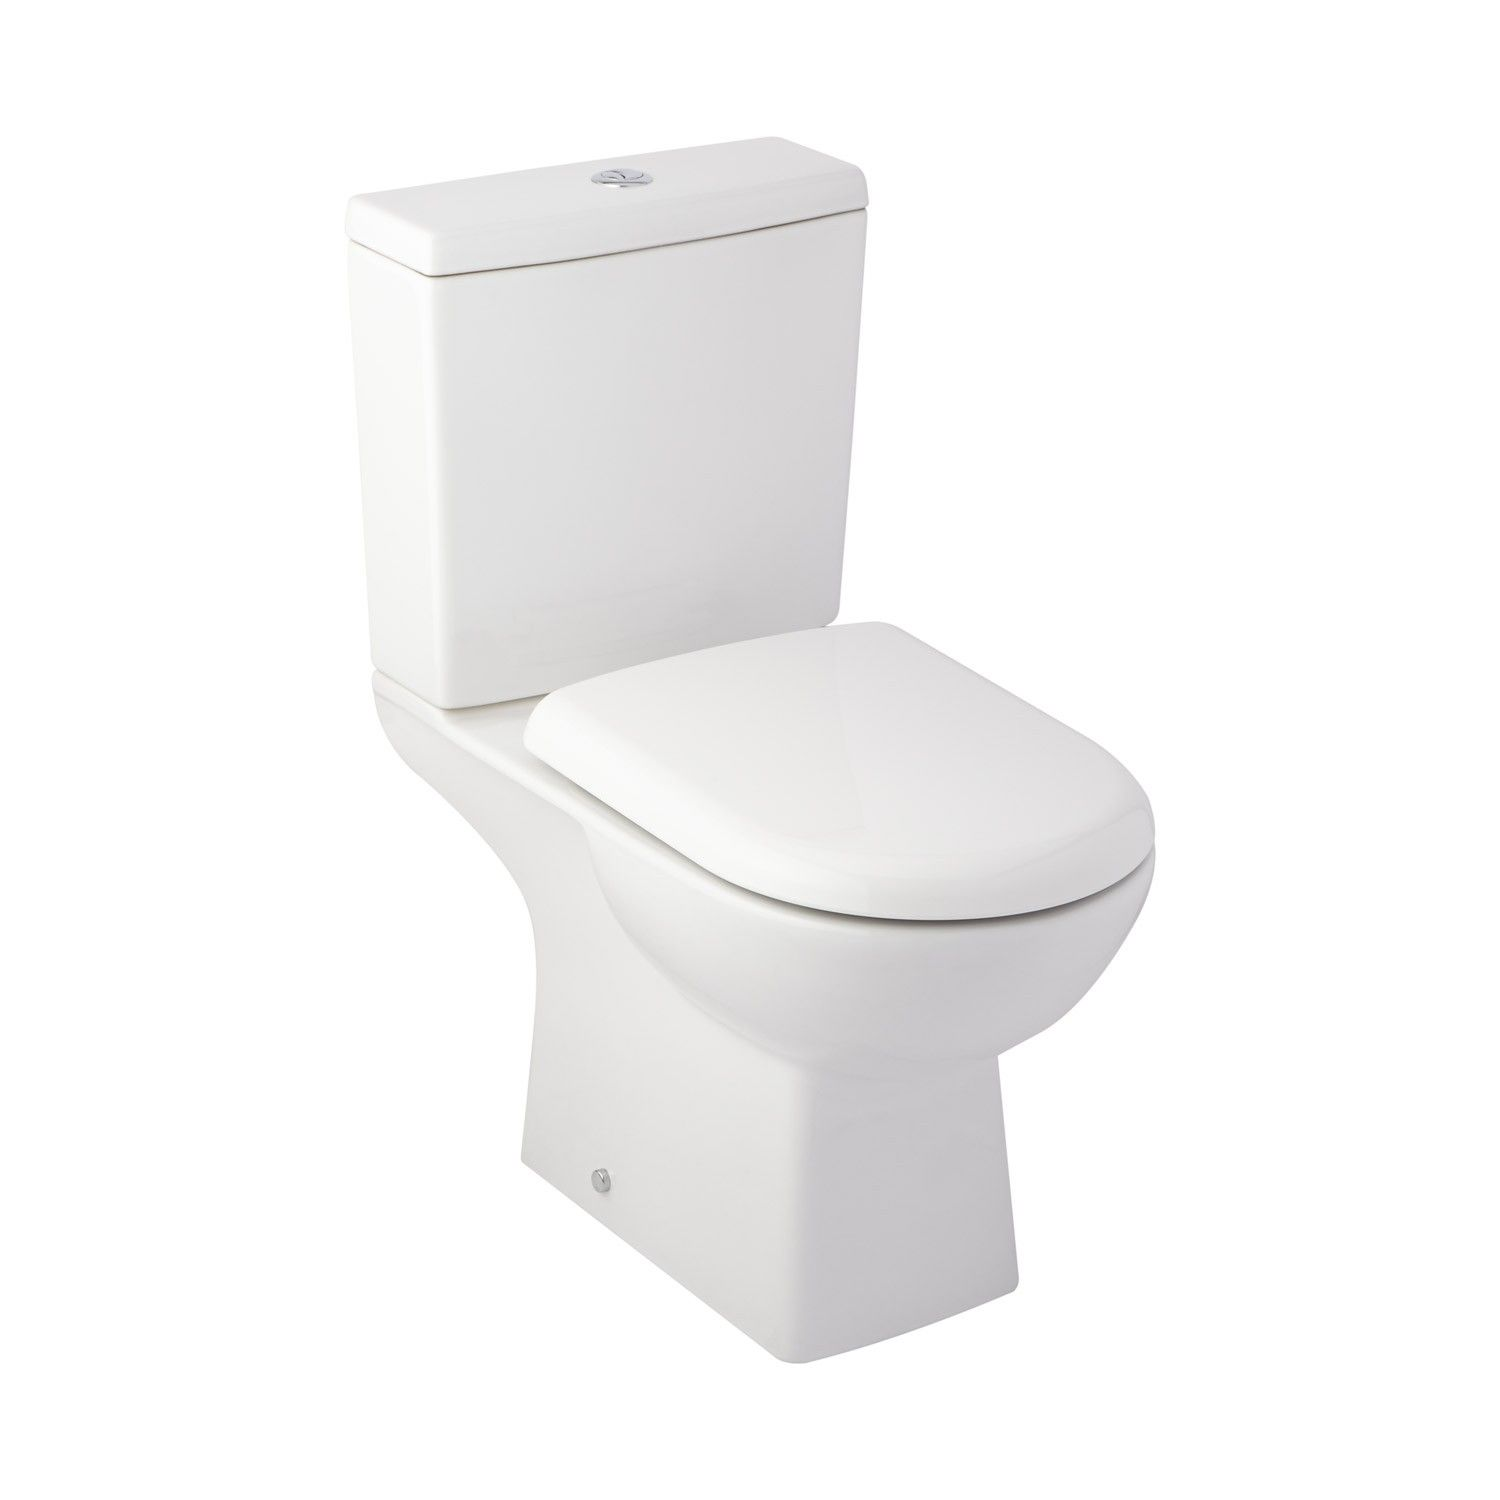 Stapleton Ii Dual Flush European Rear Outlet Toilet Two Piece Elongated White